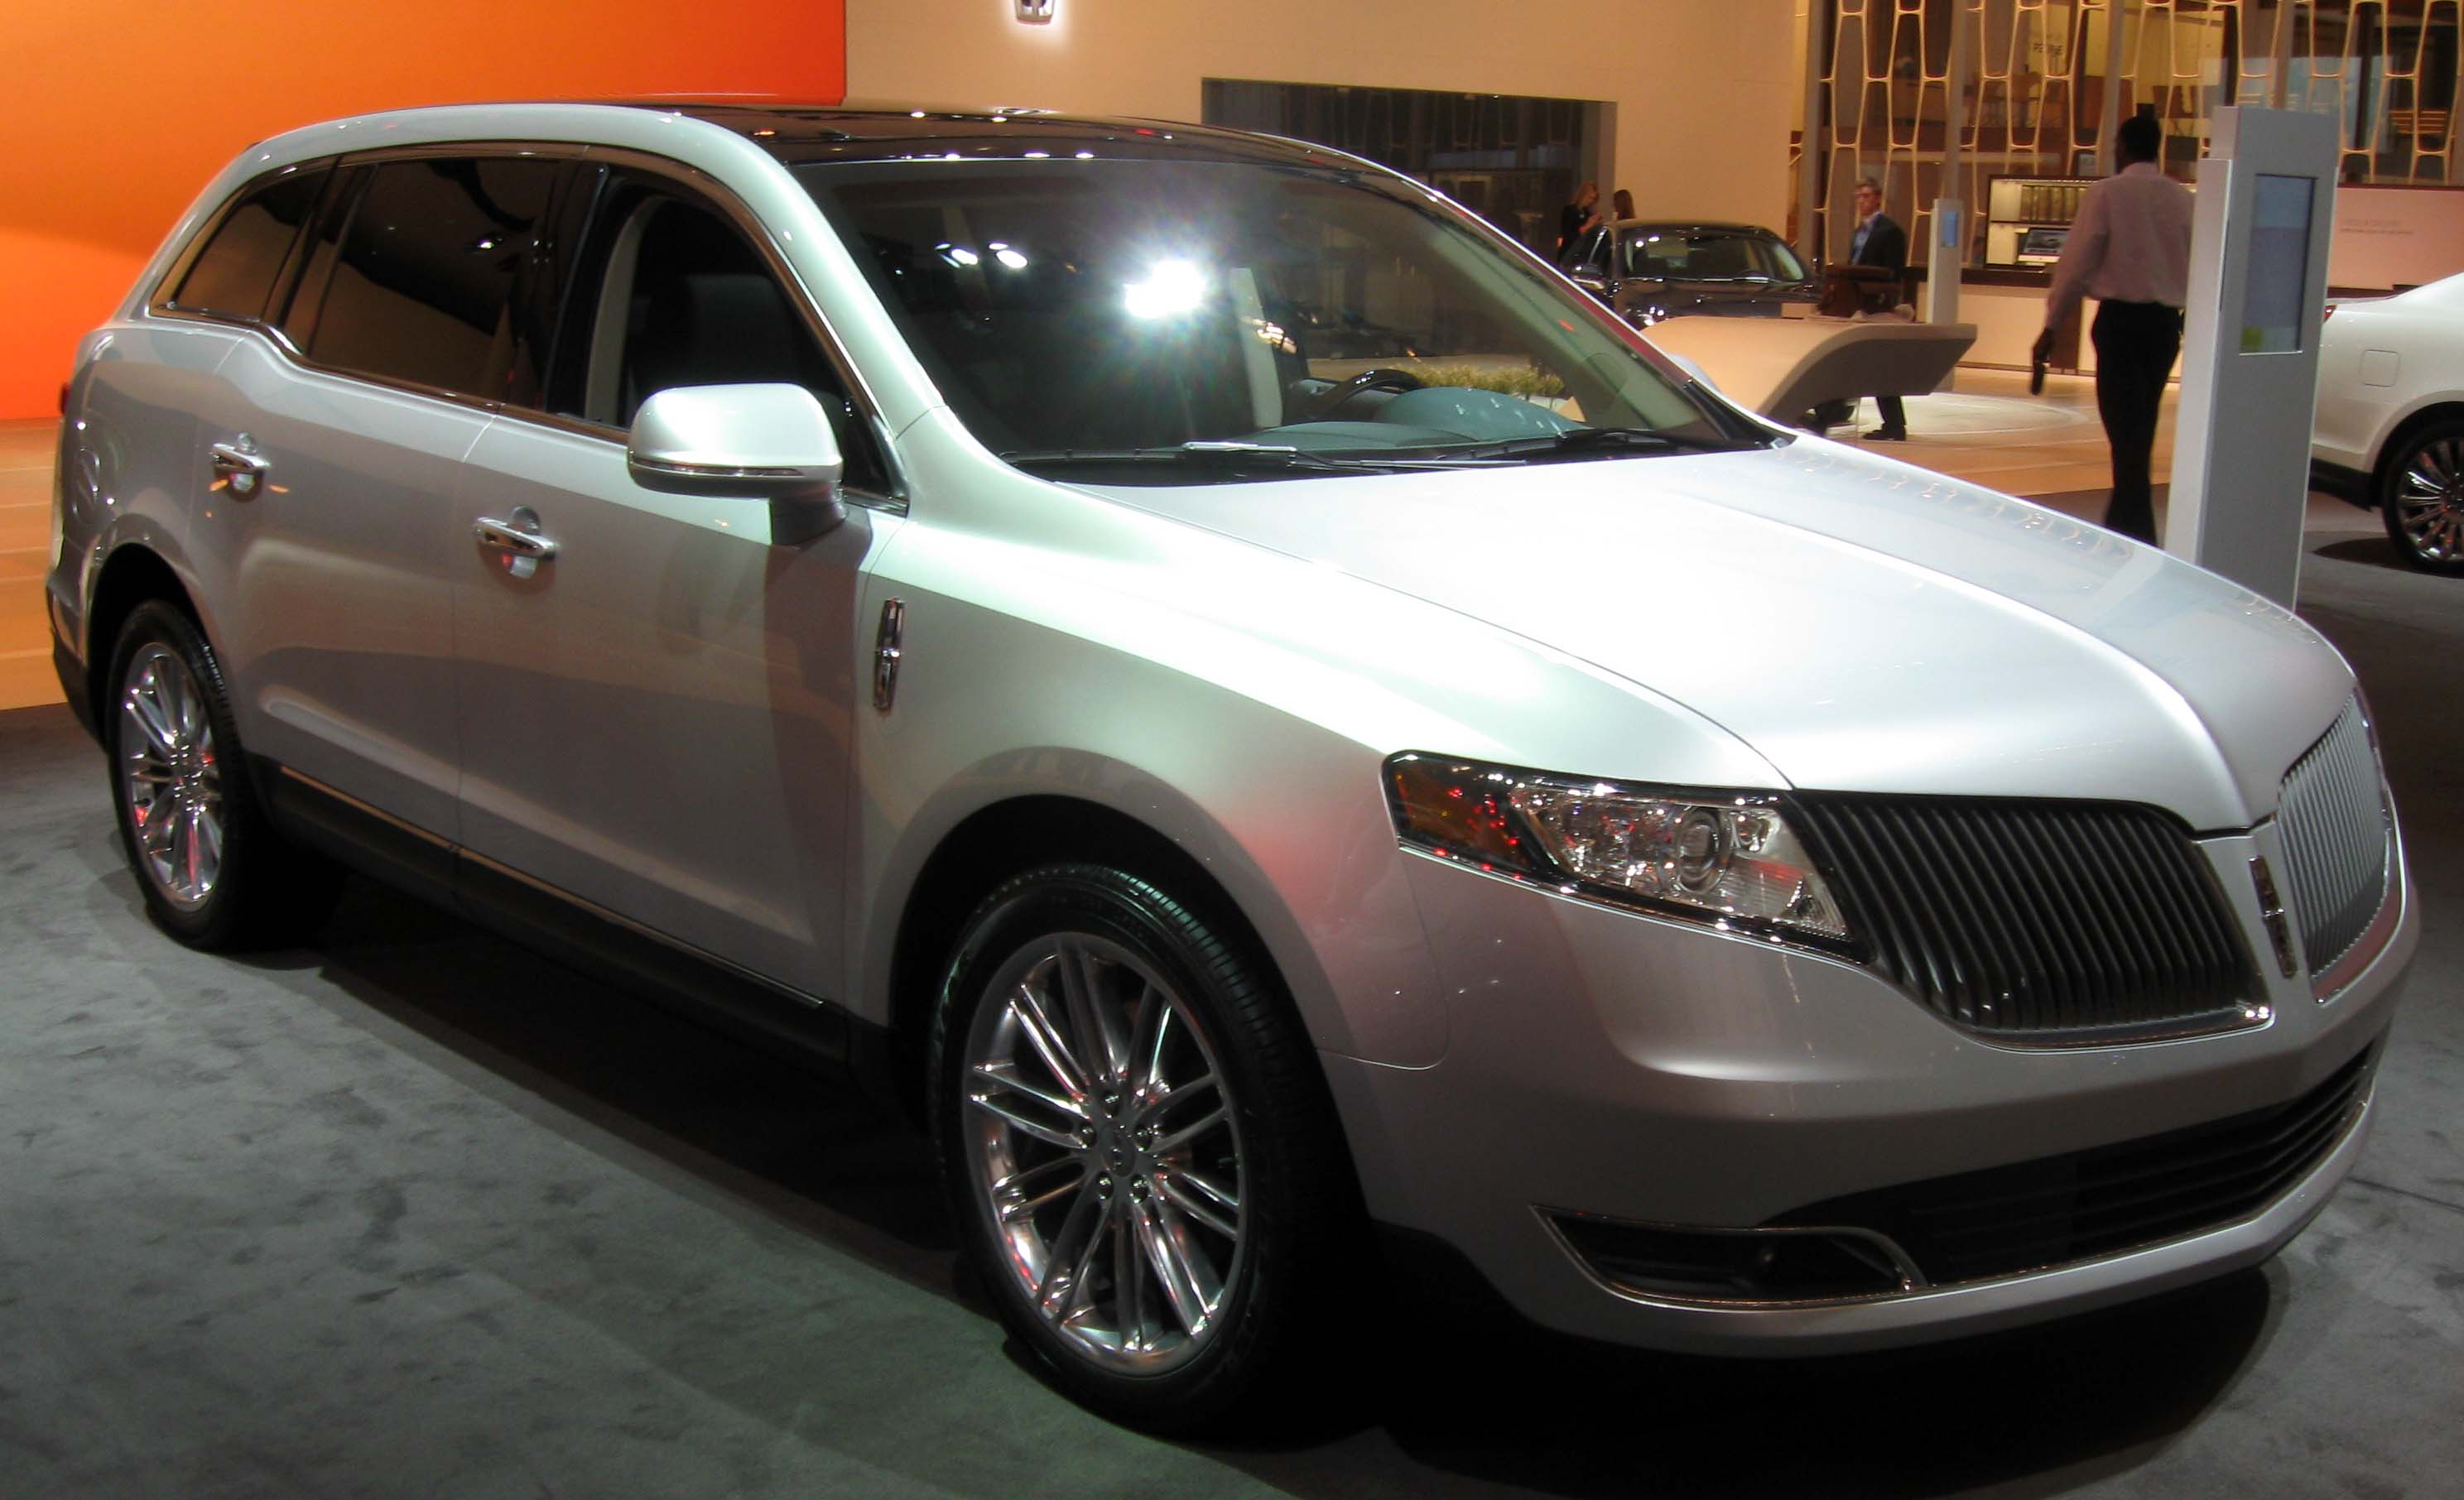 https://upload.wikimedia.org/wikipedia/commons/a/af/2013_Lincoln_MKT_--_2012_NYIAS.JPG